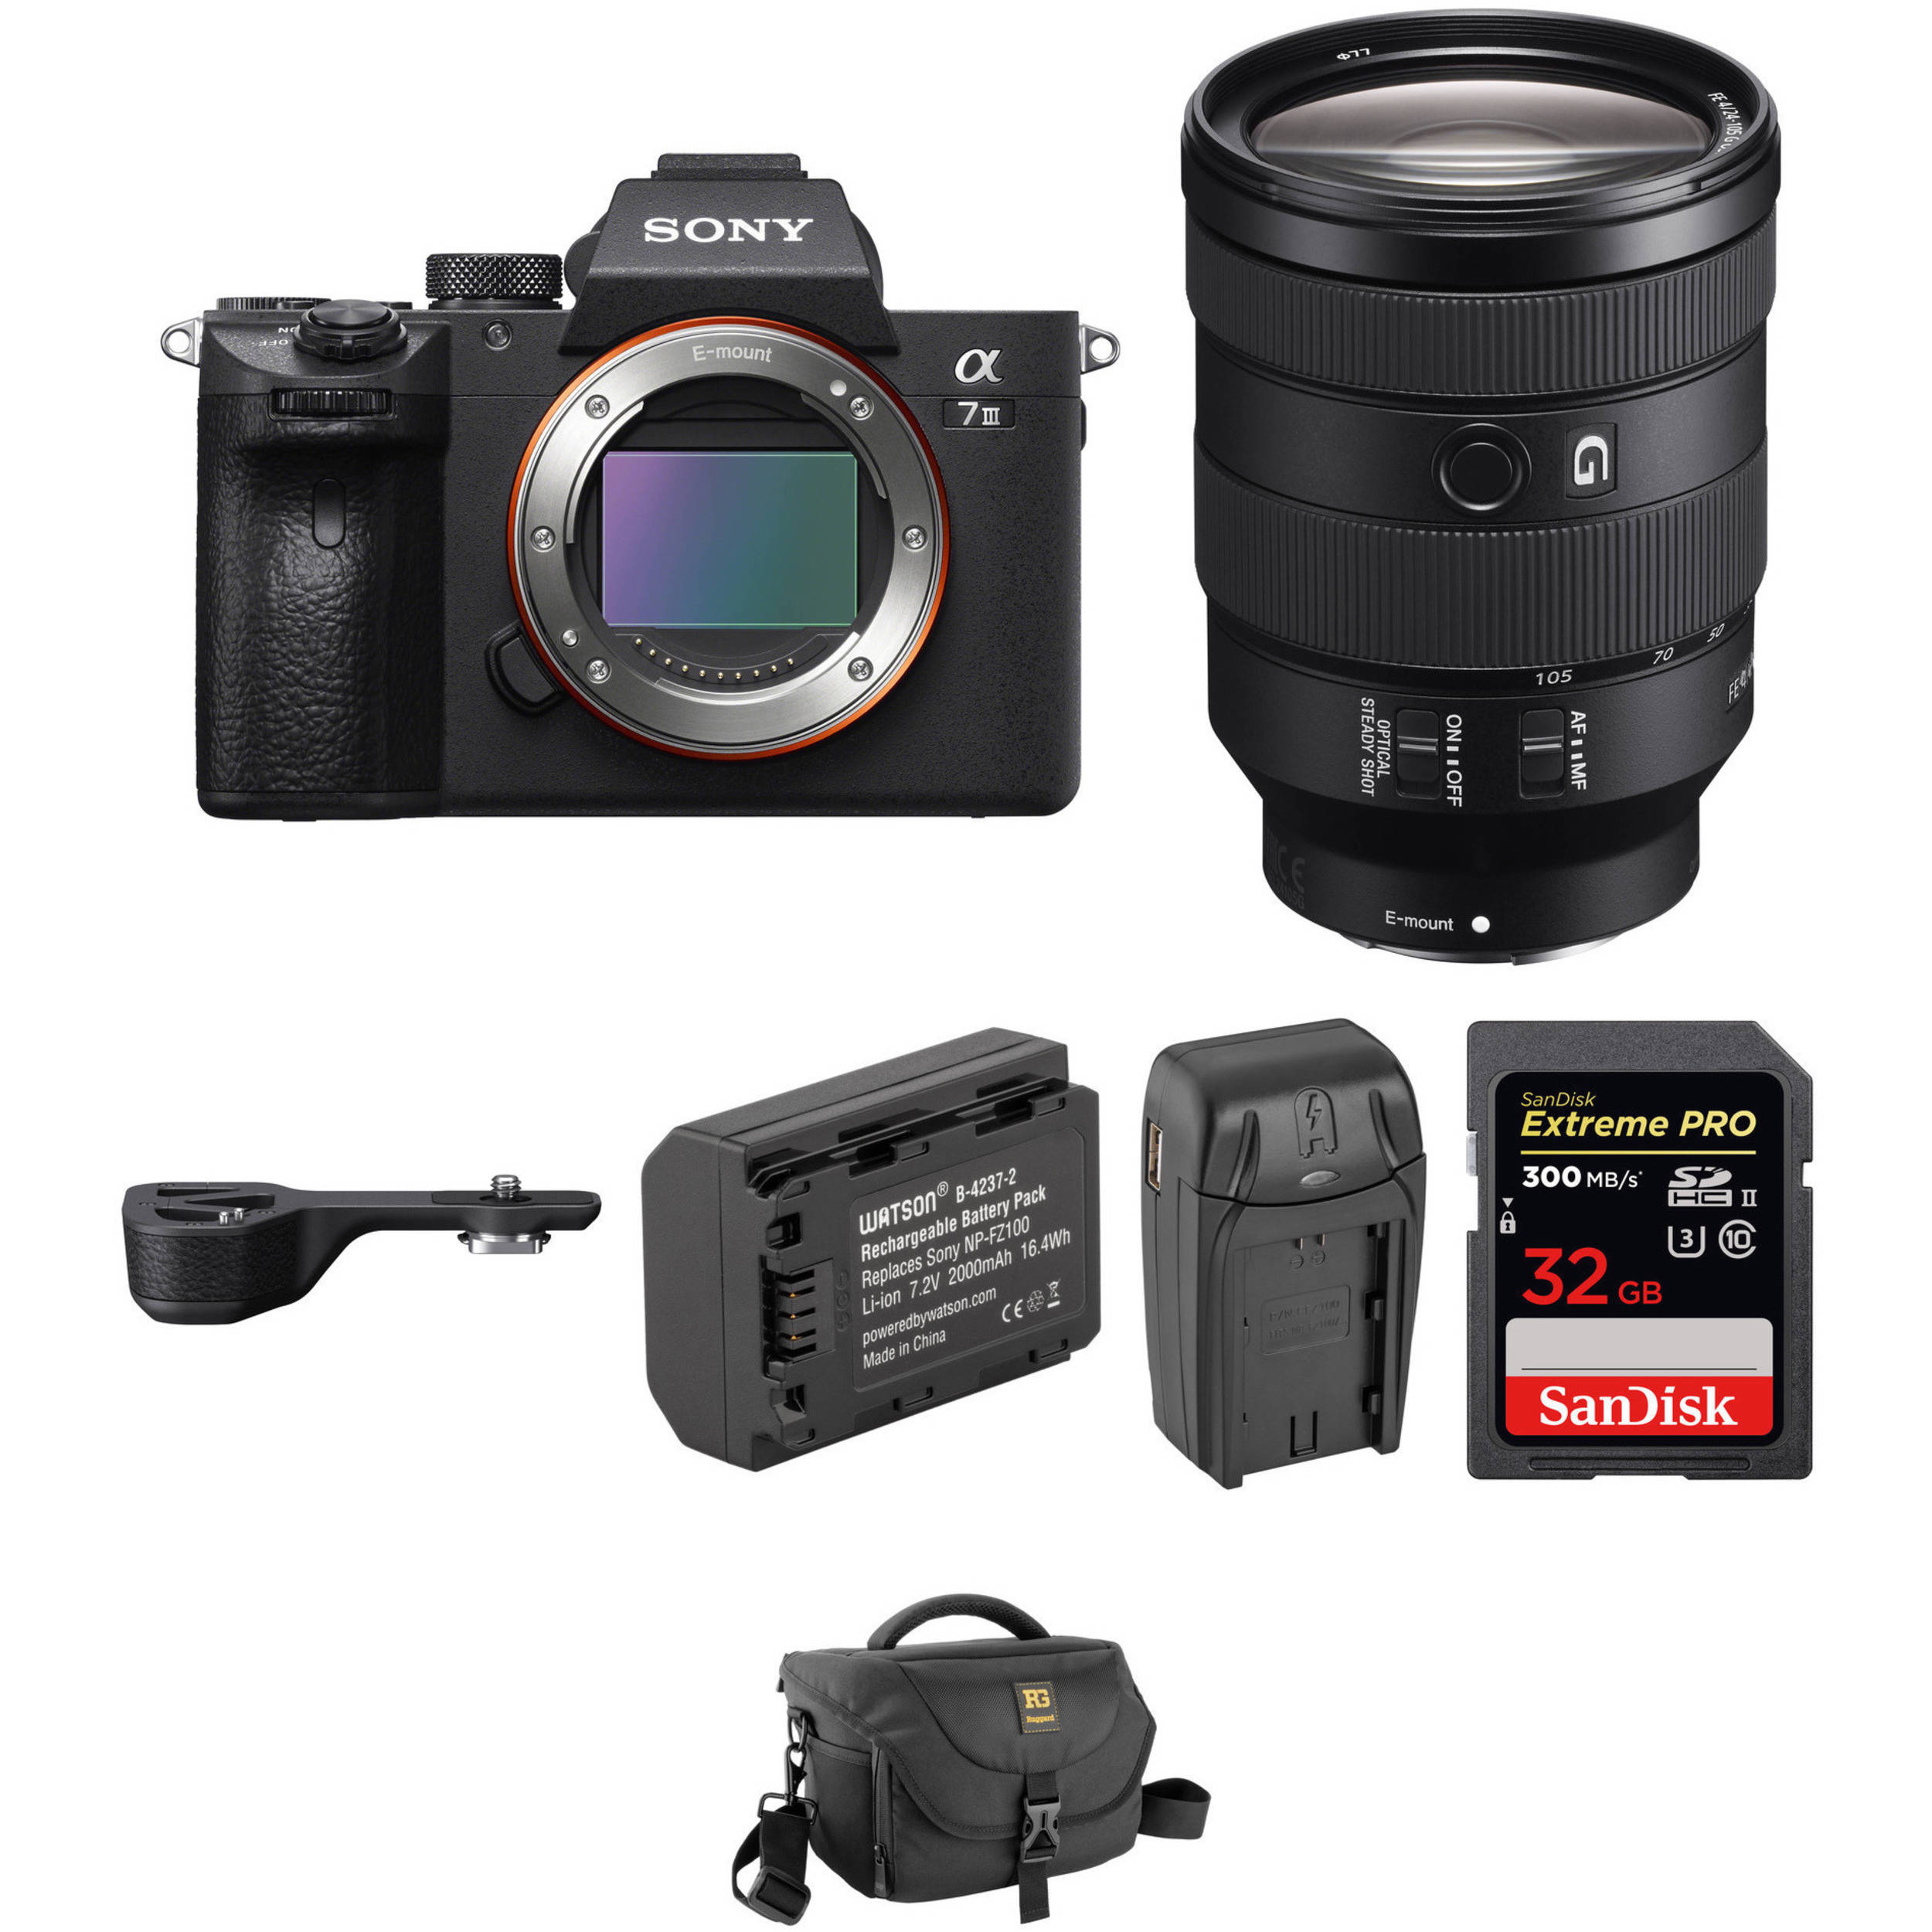 Sony Alpha a7 III Mirrorless Digital Camera with 24-105mm Lens and Grip  Extension Kit